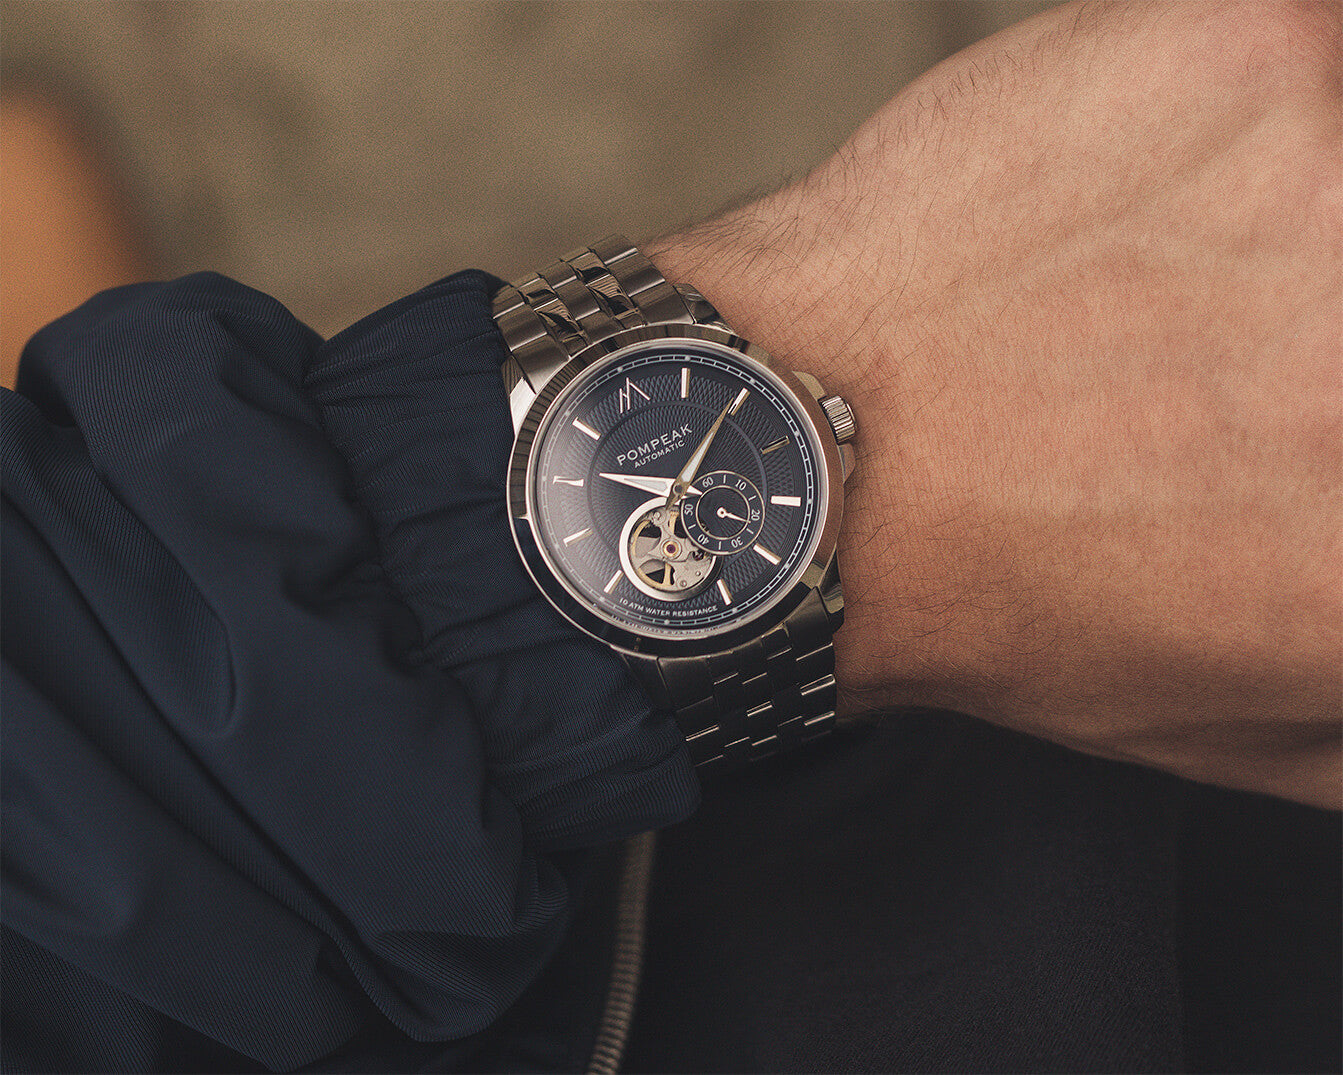 Pompeak Gentlemens Navy Automatic watch wrist shot image